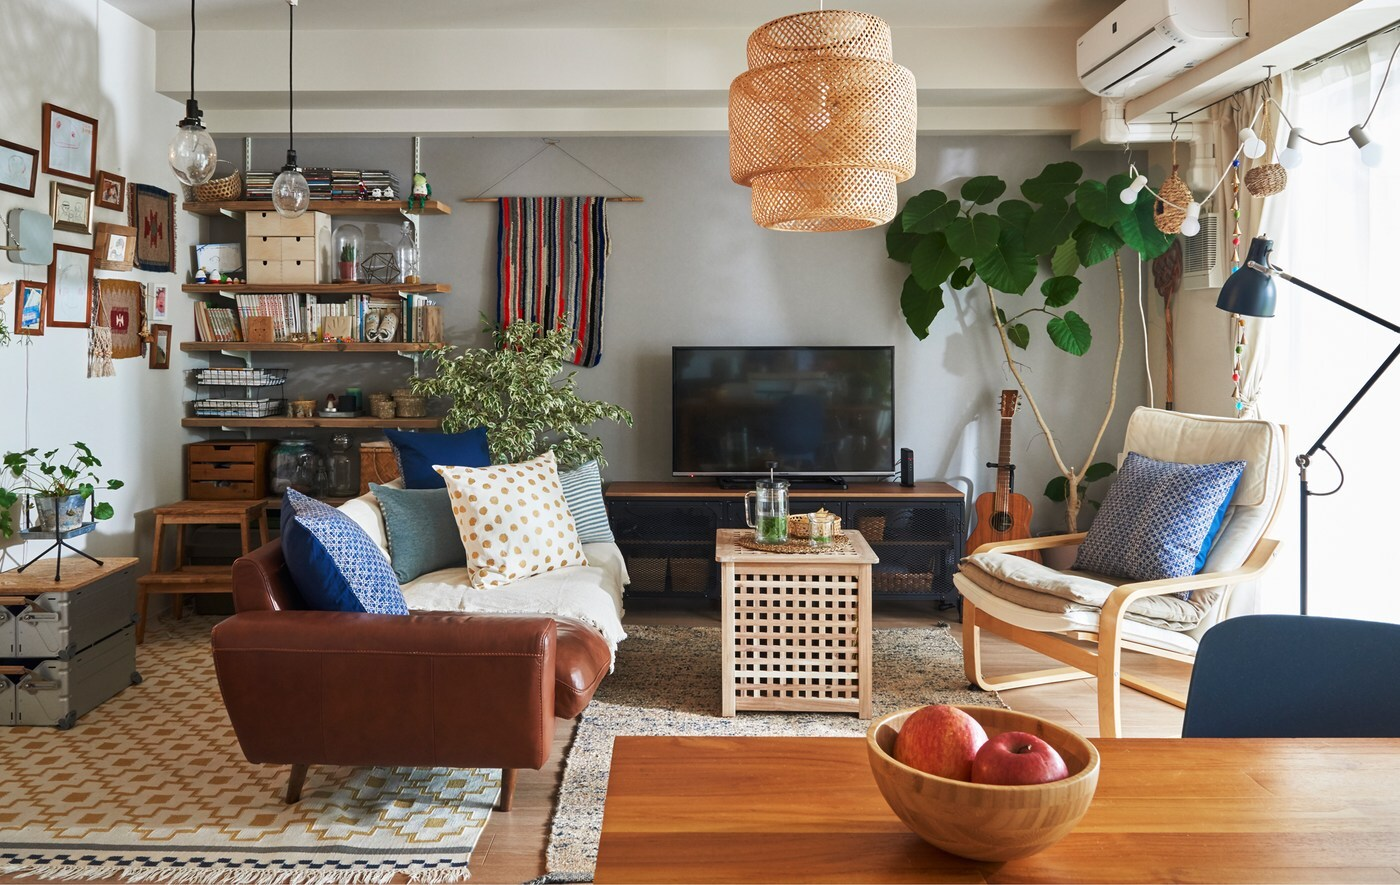 Link to IDEA blog 'Home visit: a small city home made for family time' - image of living room with natural textures and plants.